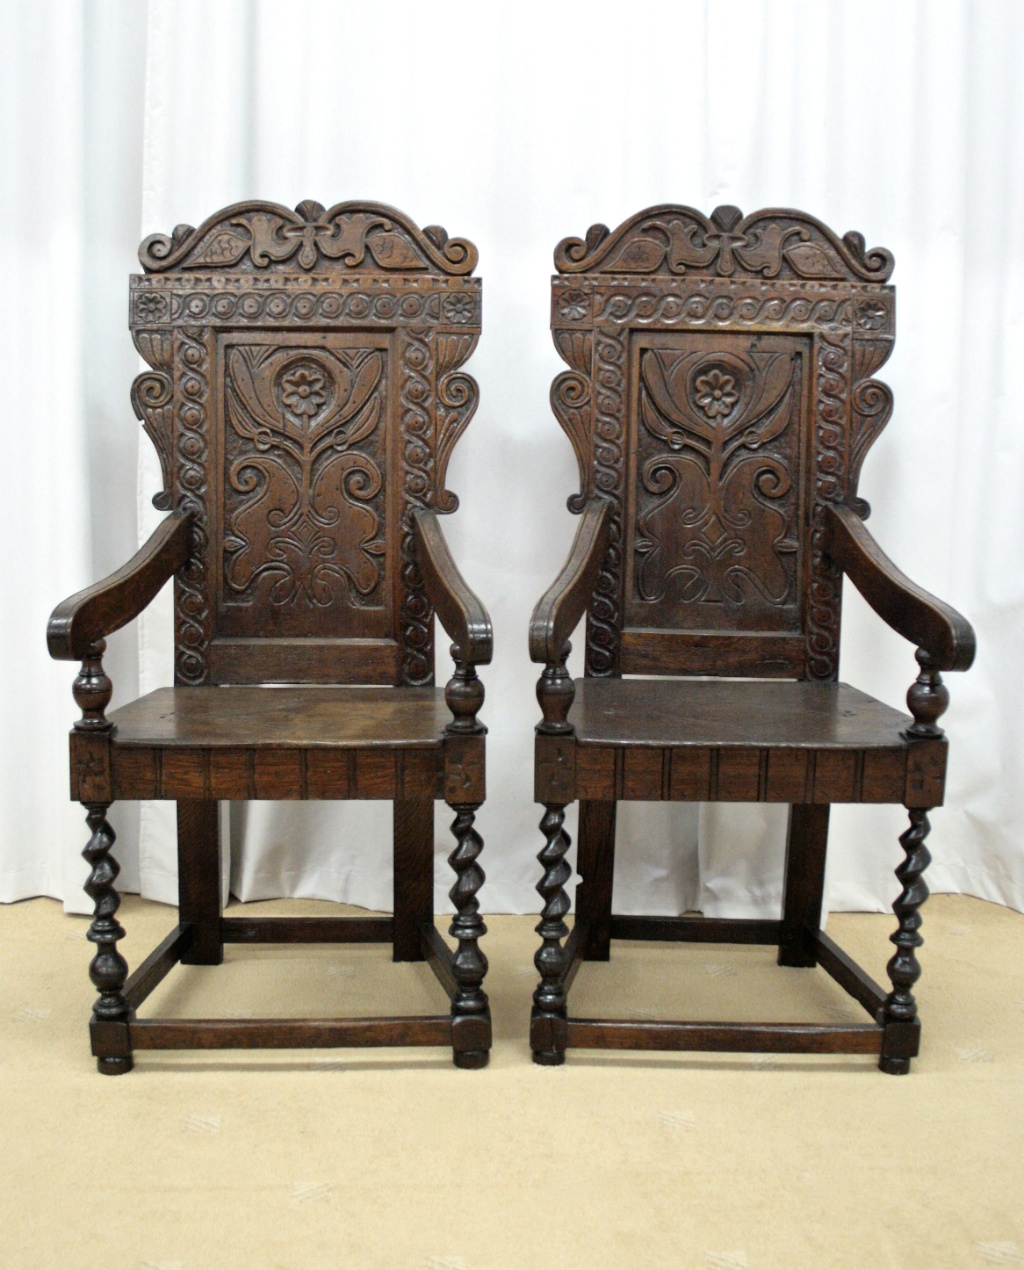 19th century oak wainscot style chairs for sale classifieds - Reasons choosing vintage style furniture ...